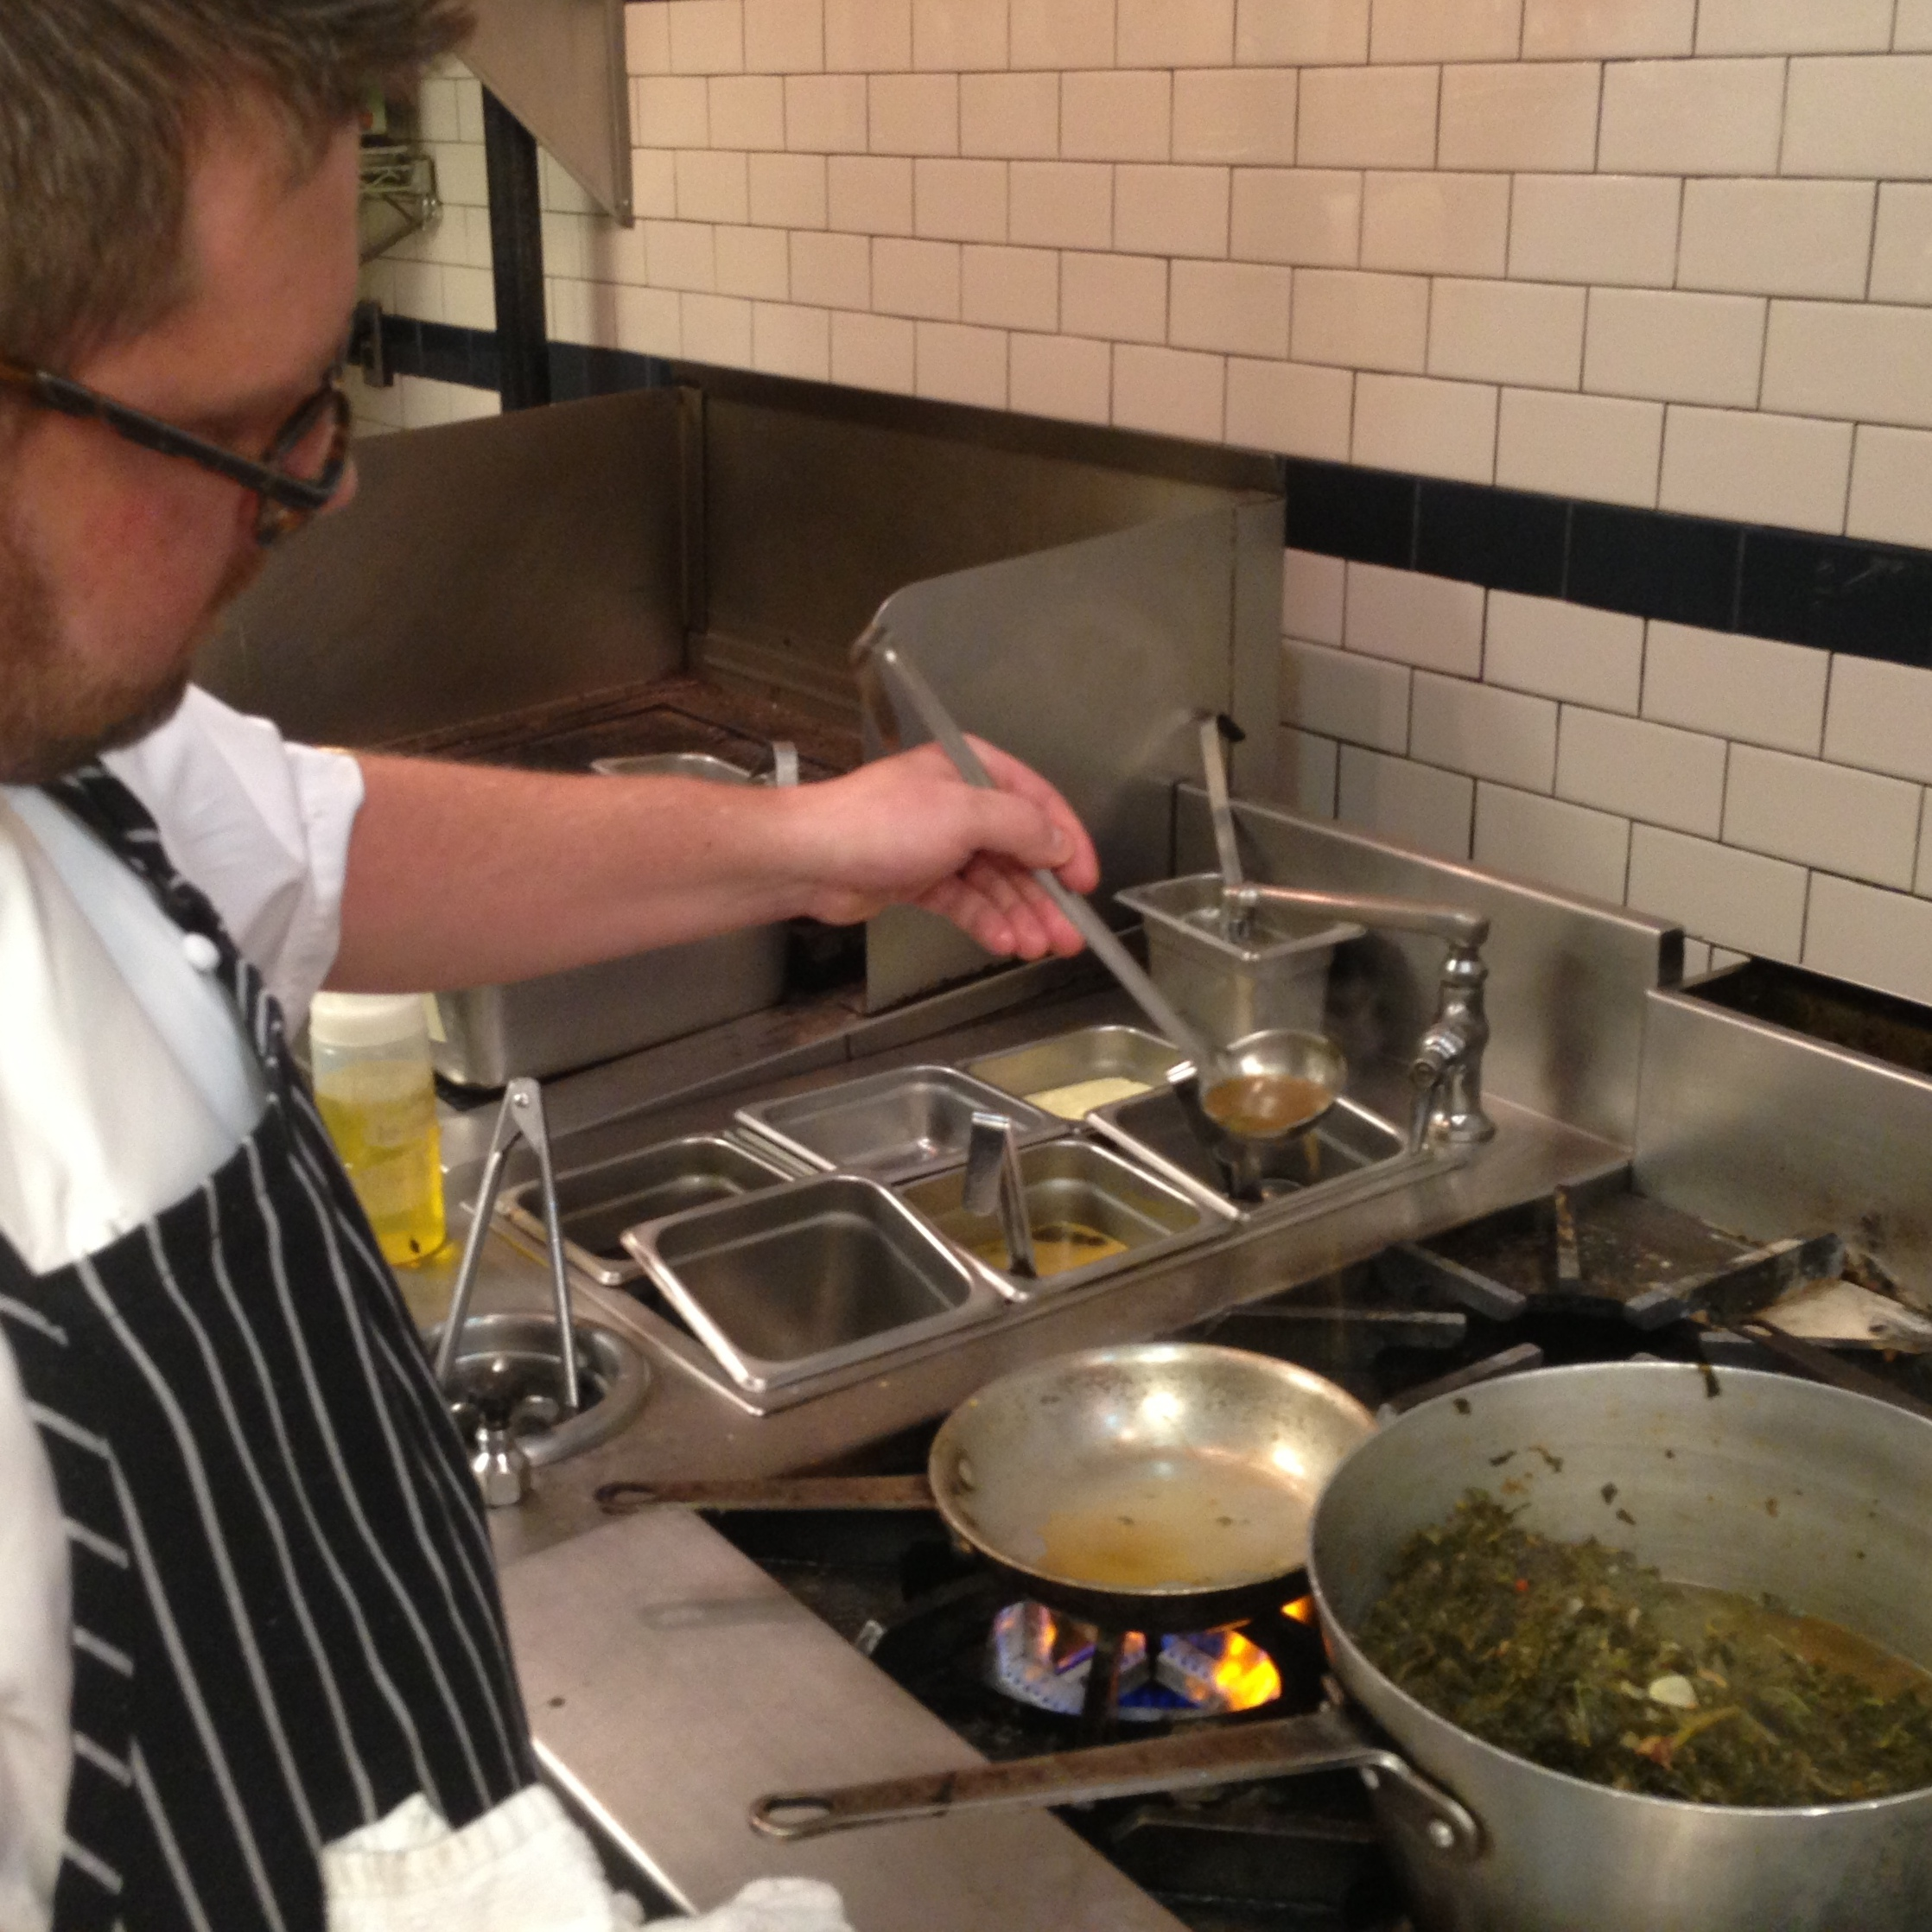 Chef James Huff of Pearl Dive restaurant ladles up some pot liquor fresh from a steaming pot of sauteed collard greens and kale.